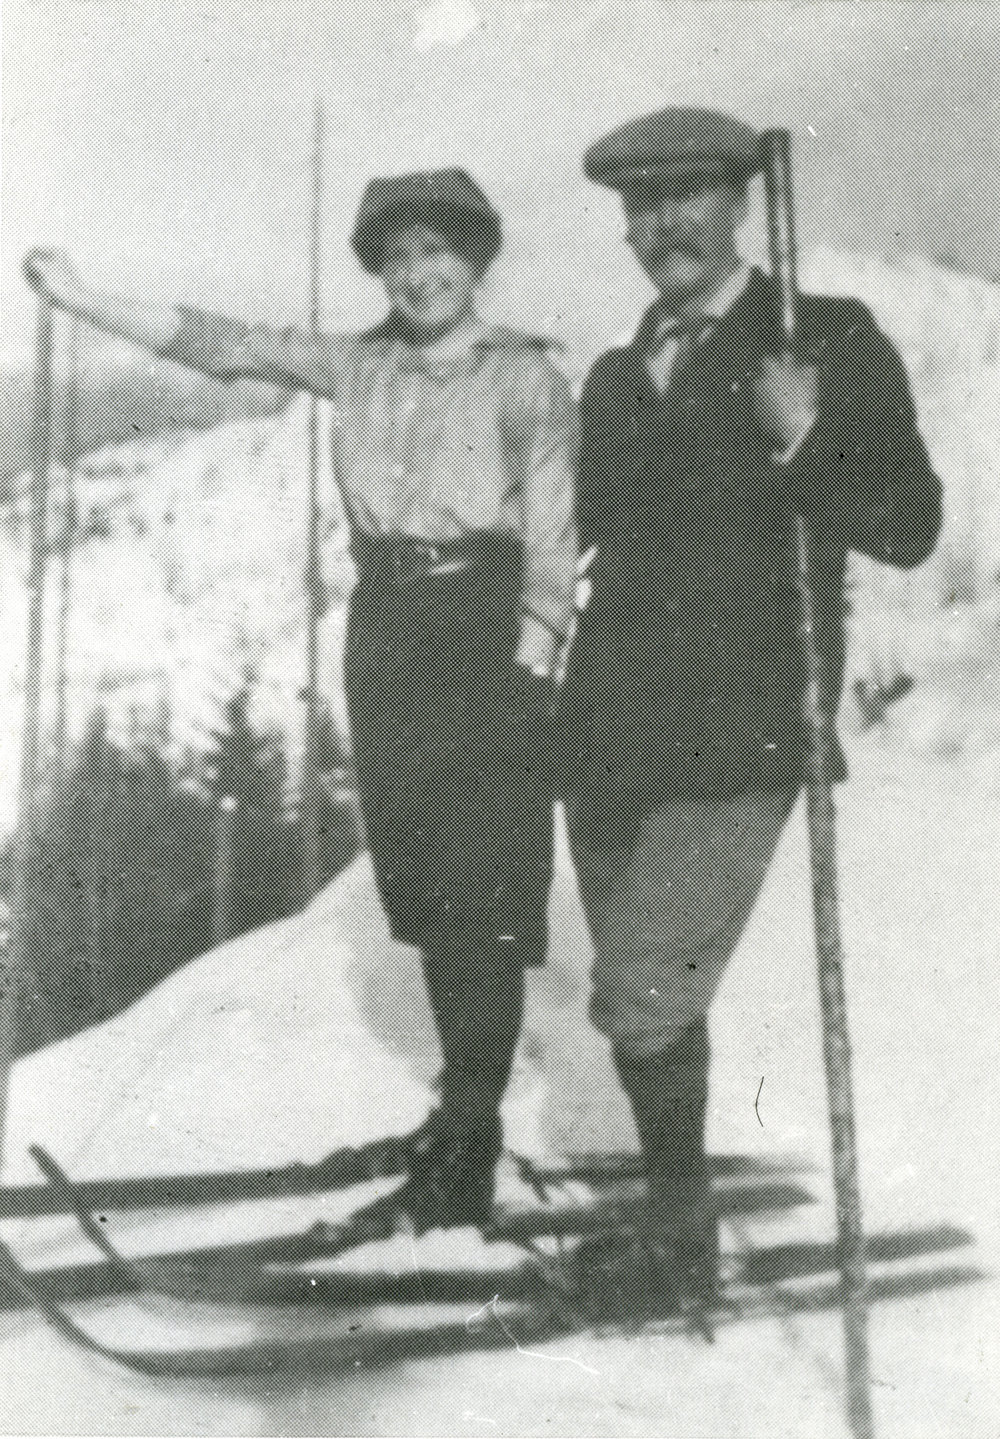 Mr. & Mrs. B. R. Atkins skiing, c.1920s.